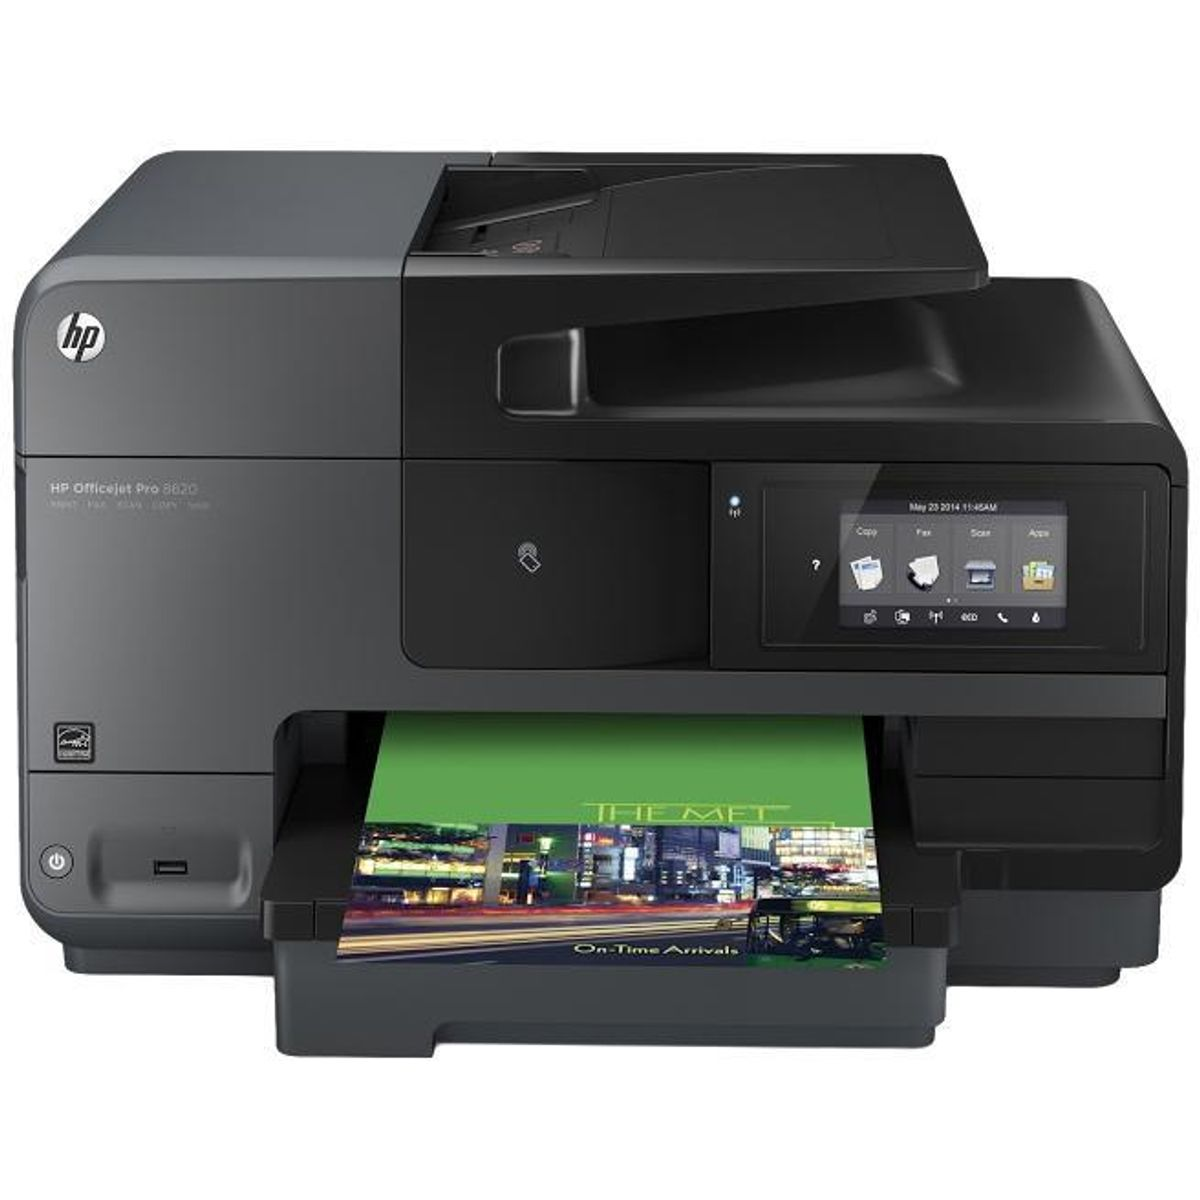 HP OfficeJet Pro 8620 e-All-in-One, Tinte (A7F65A)